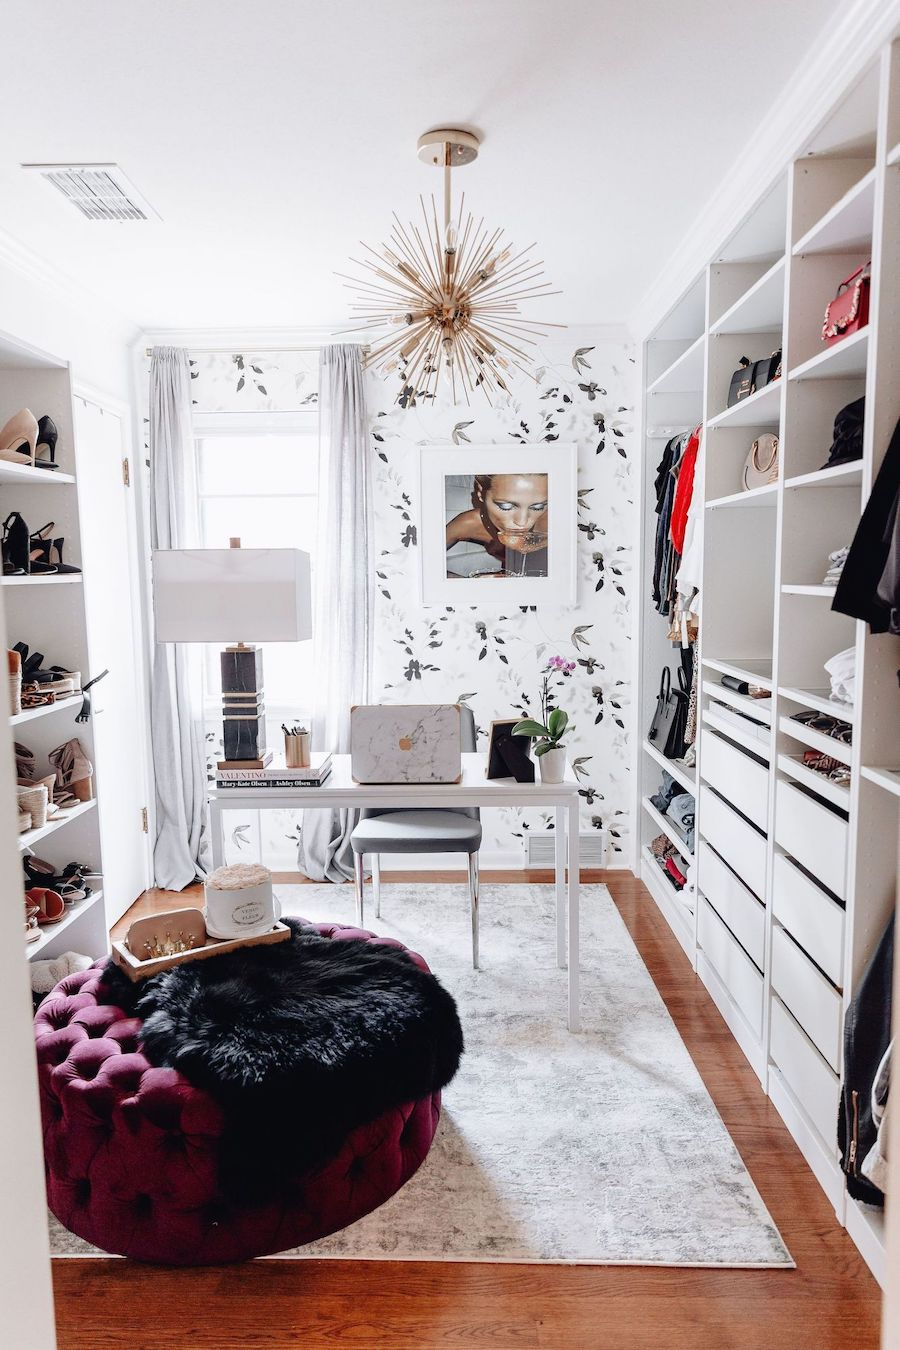 How to Convert a Closet into an Office